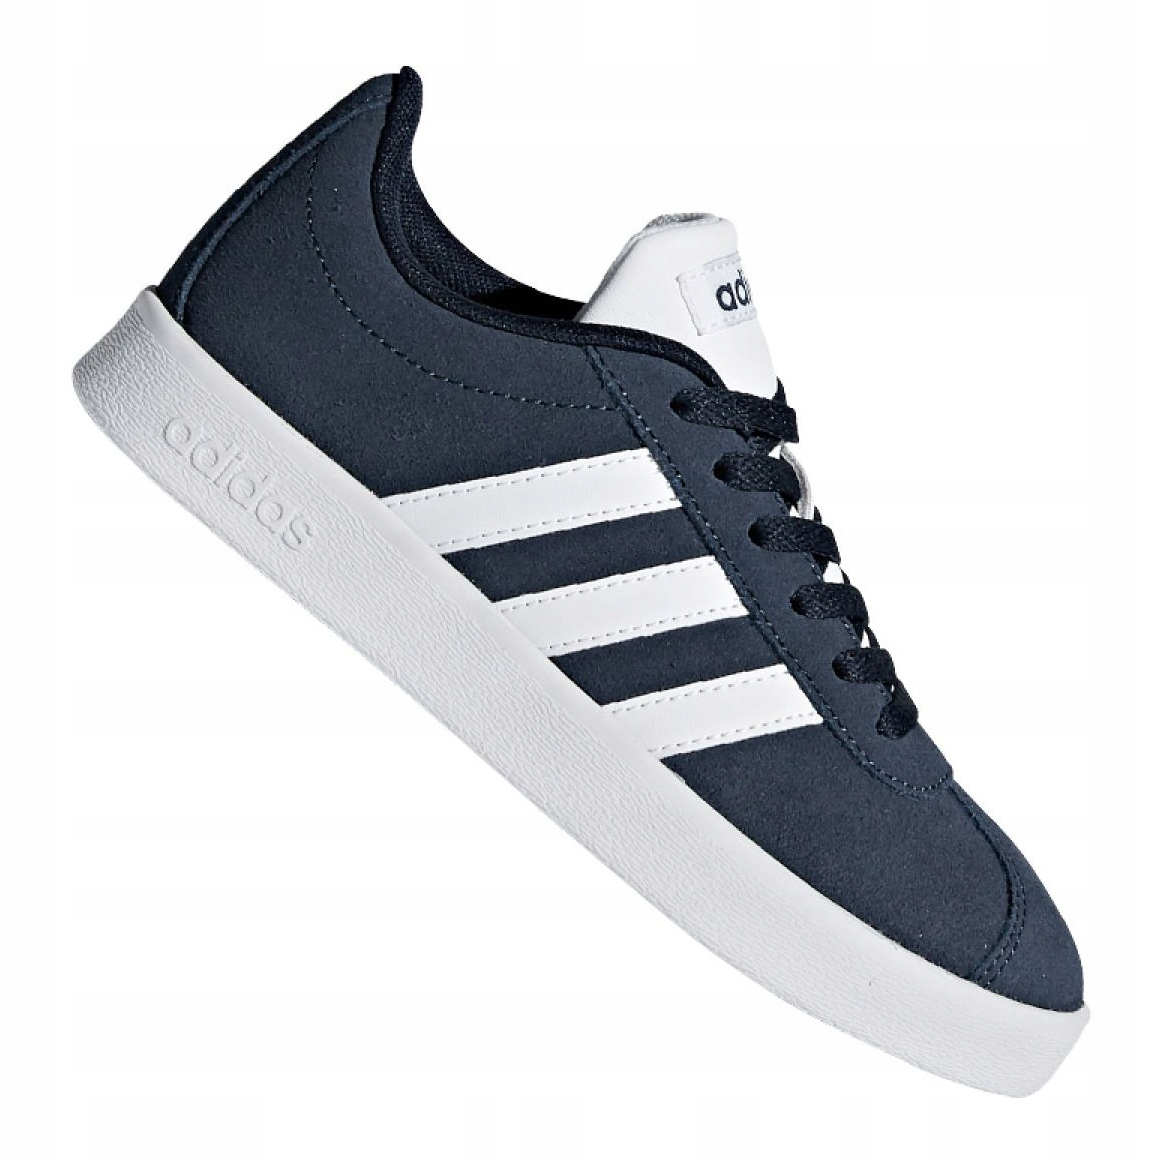 en términos de Abstracción Palpitar  Shoes adidas Vl Court 2.0 Jr DB1828 navy - ButyModne.pl